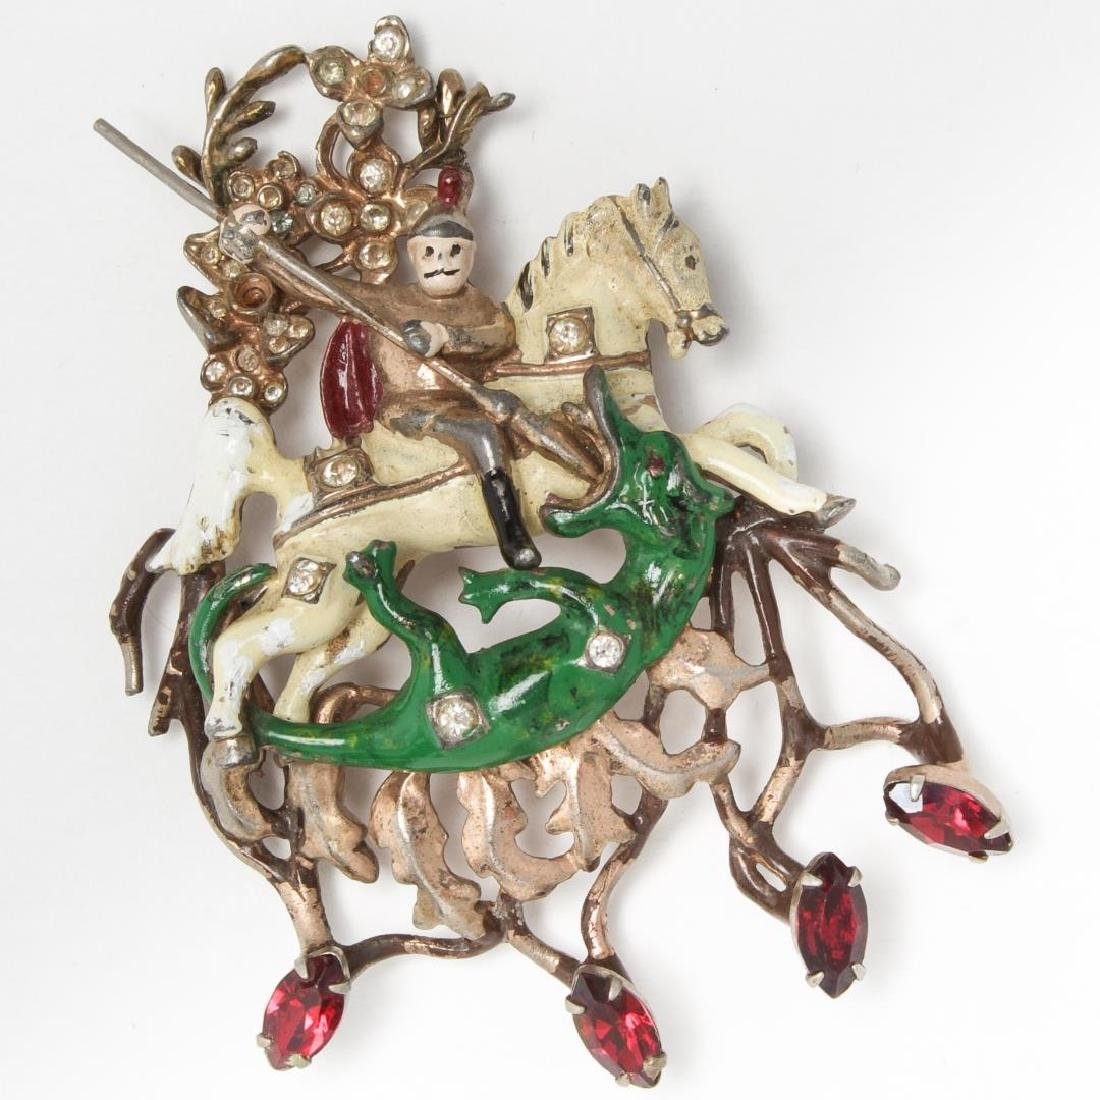 Baroque-Manner Enamel Pin, St. George & the Dragon